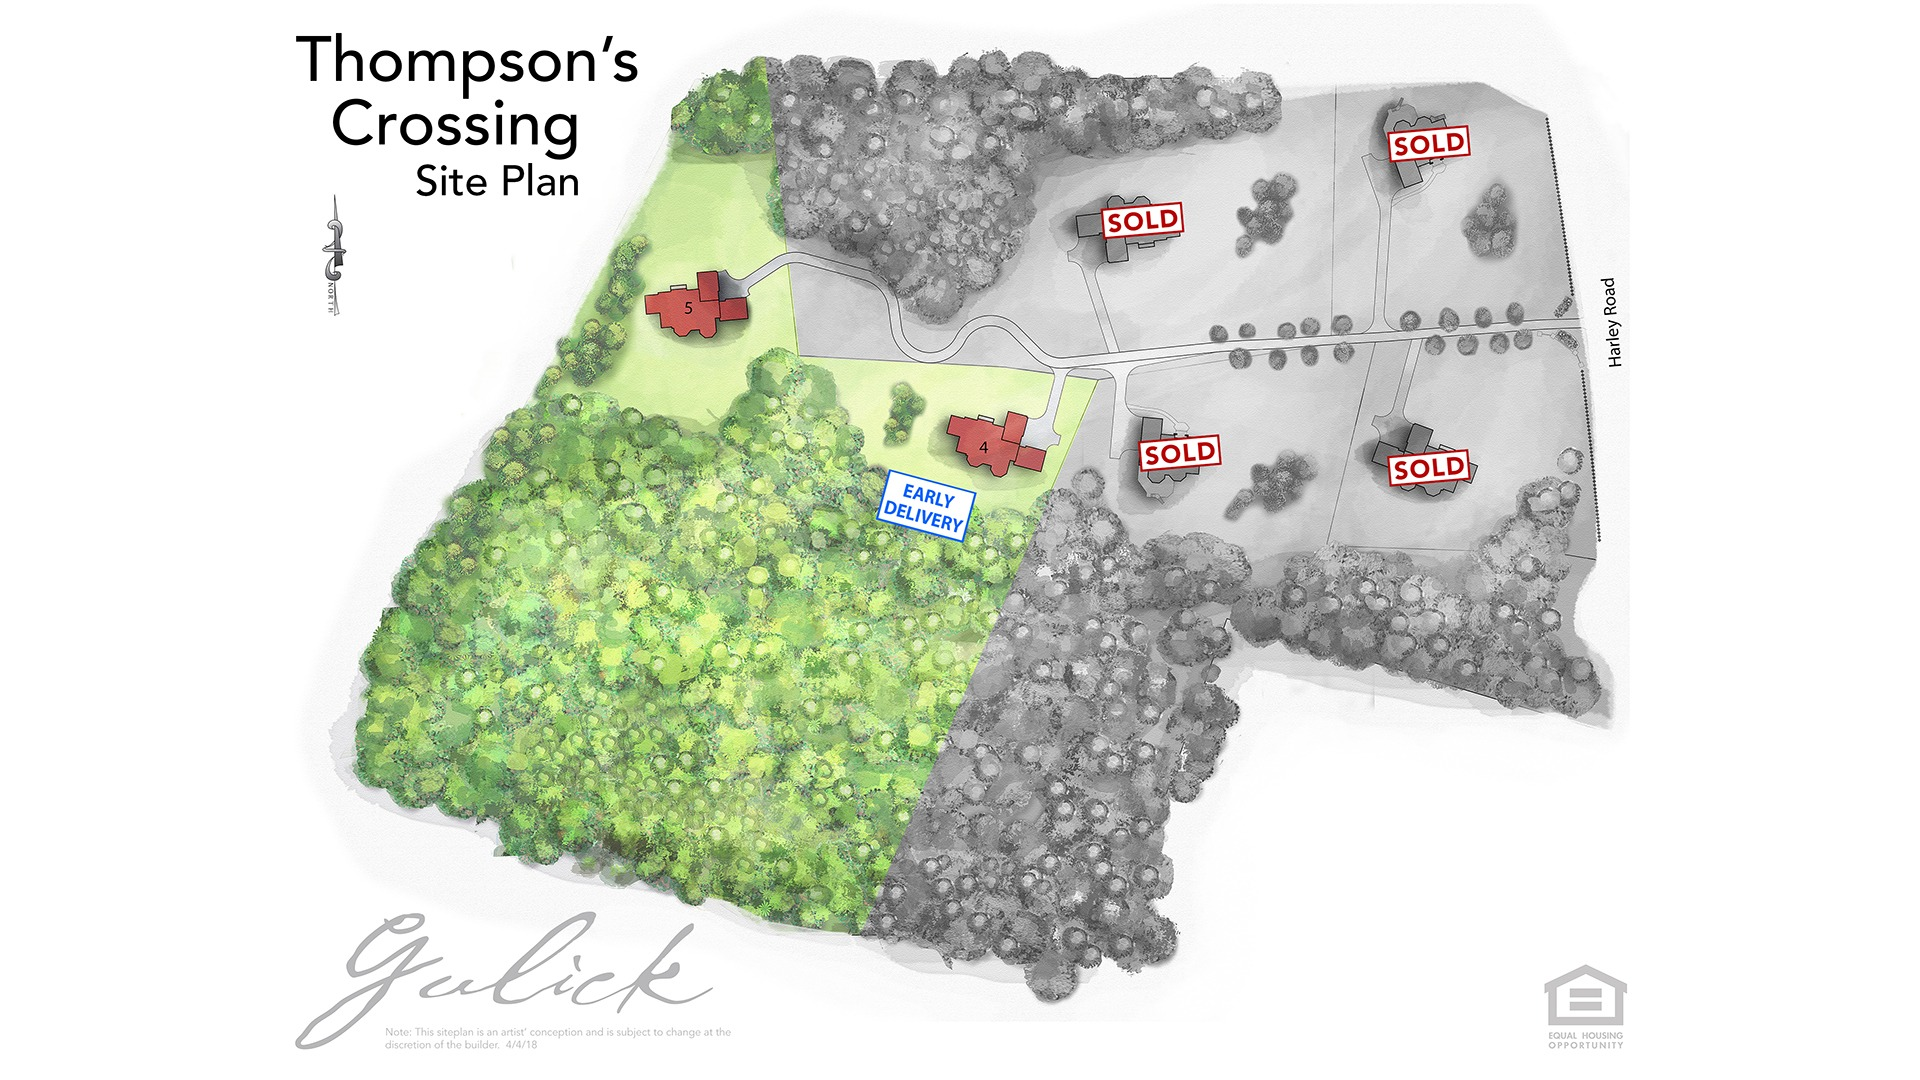 Thompson's Crossing Site Plan - showing sold lots